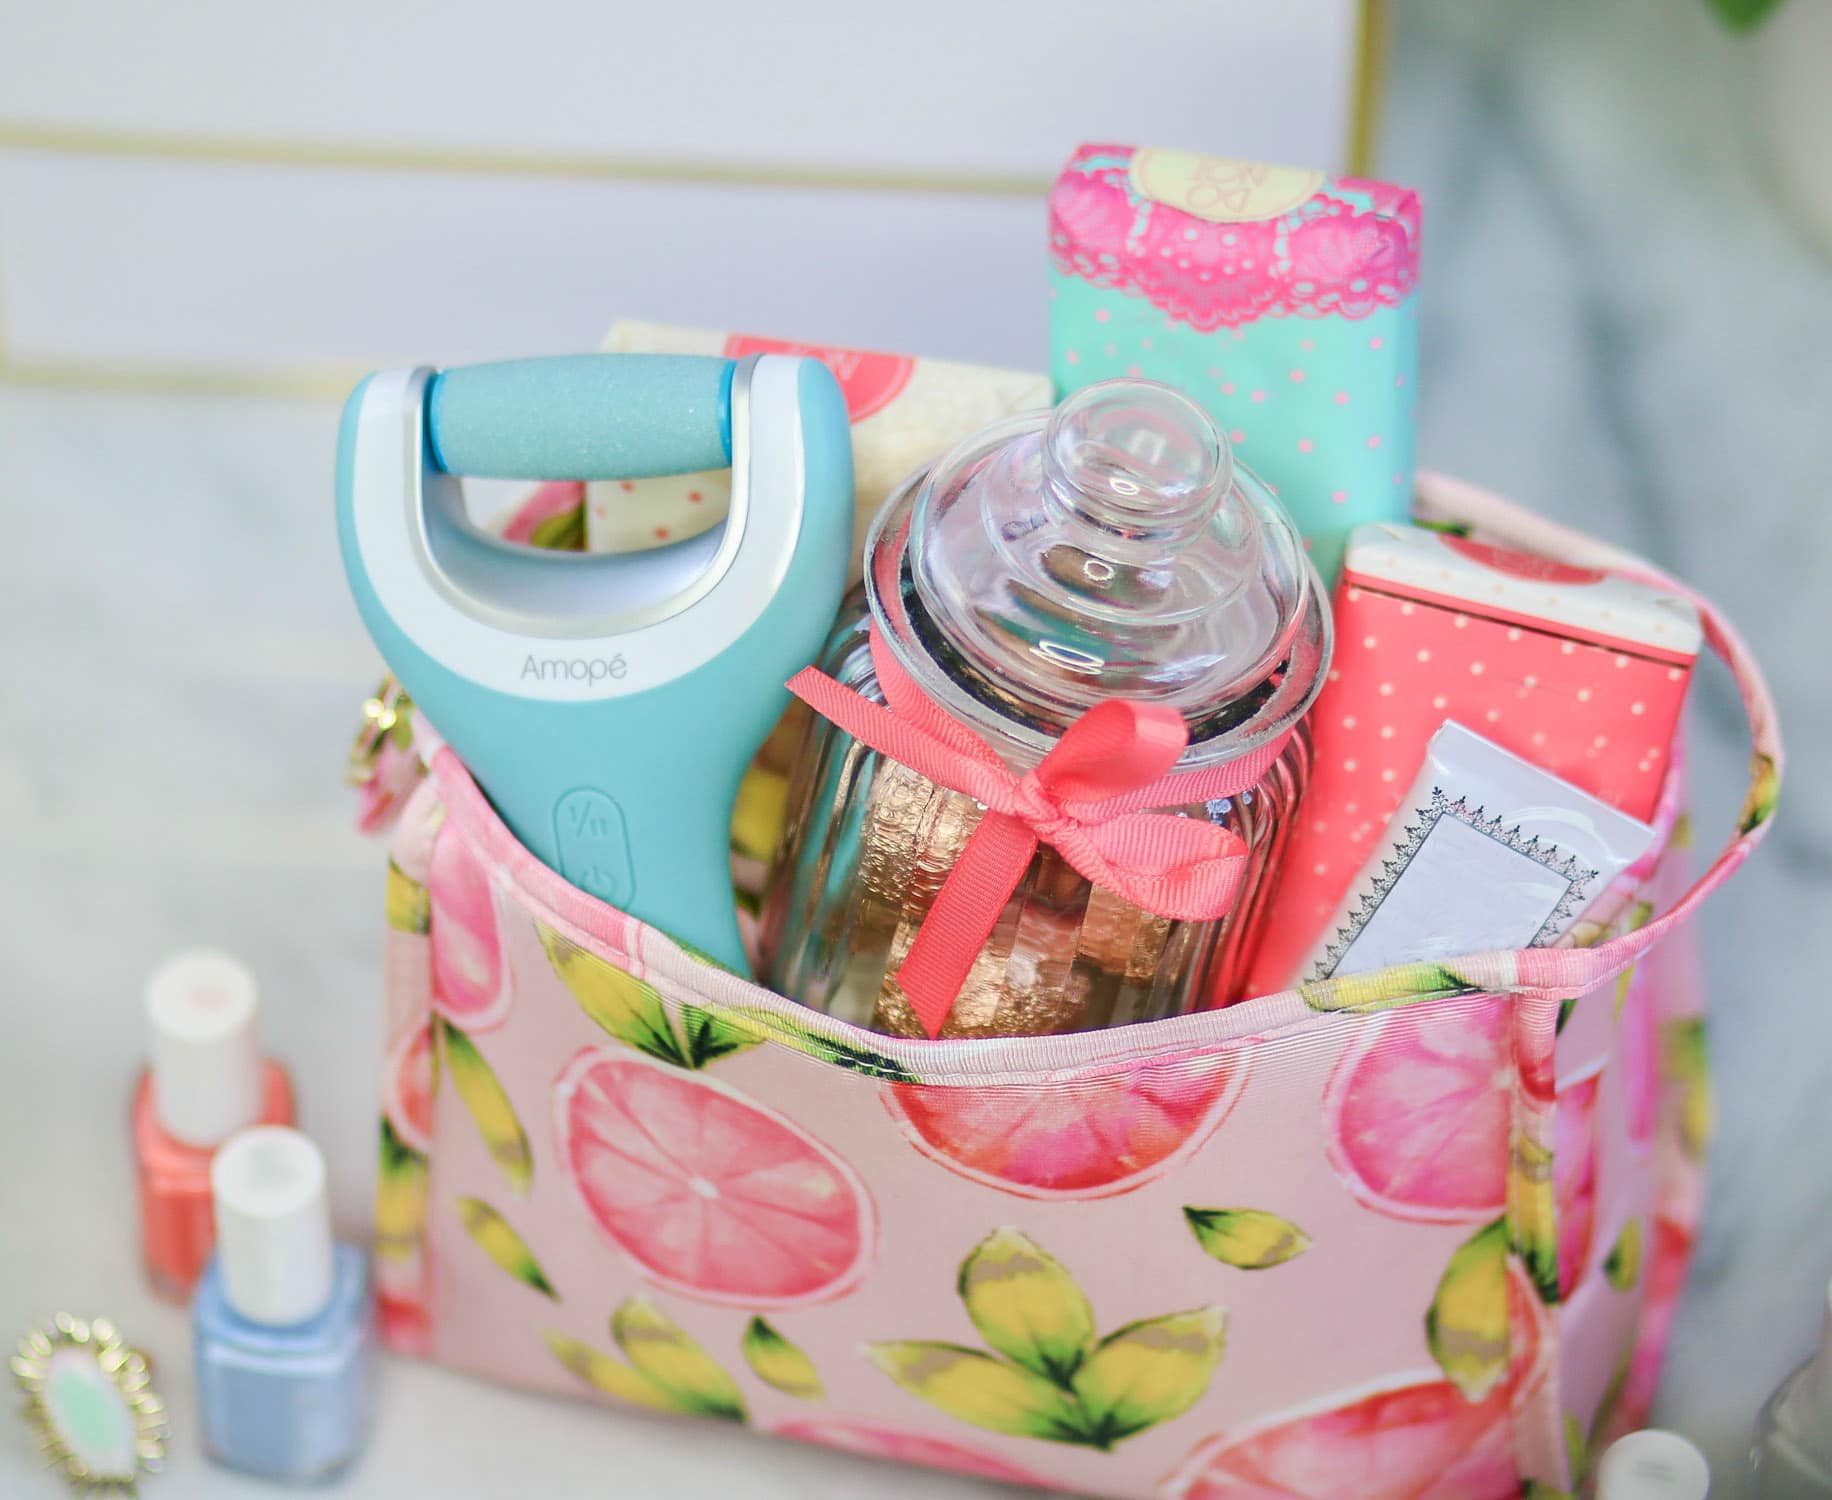 Homemade Gift Ideas For Girls  Cute Gift Ideas for Your Friends